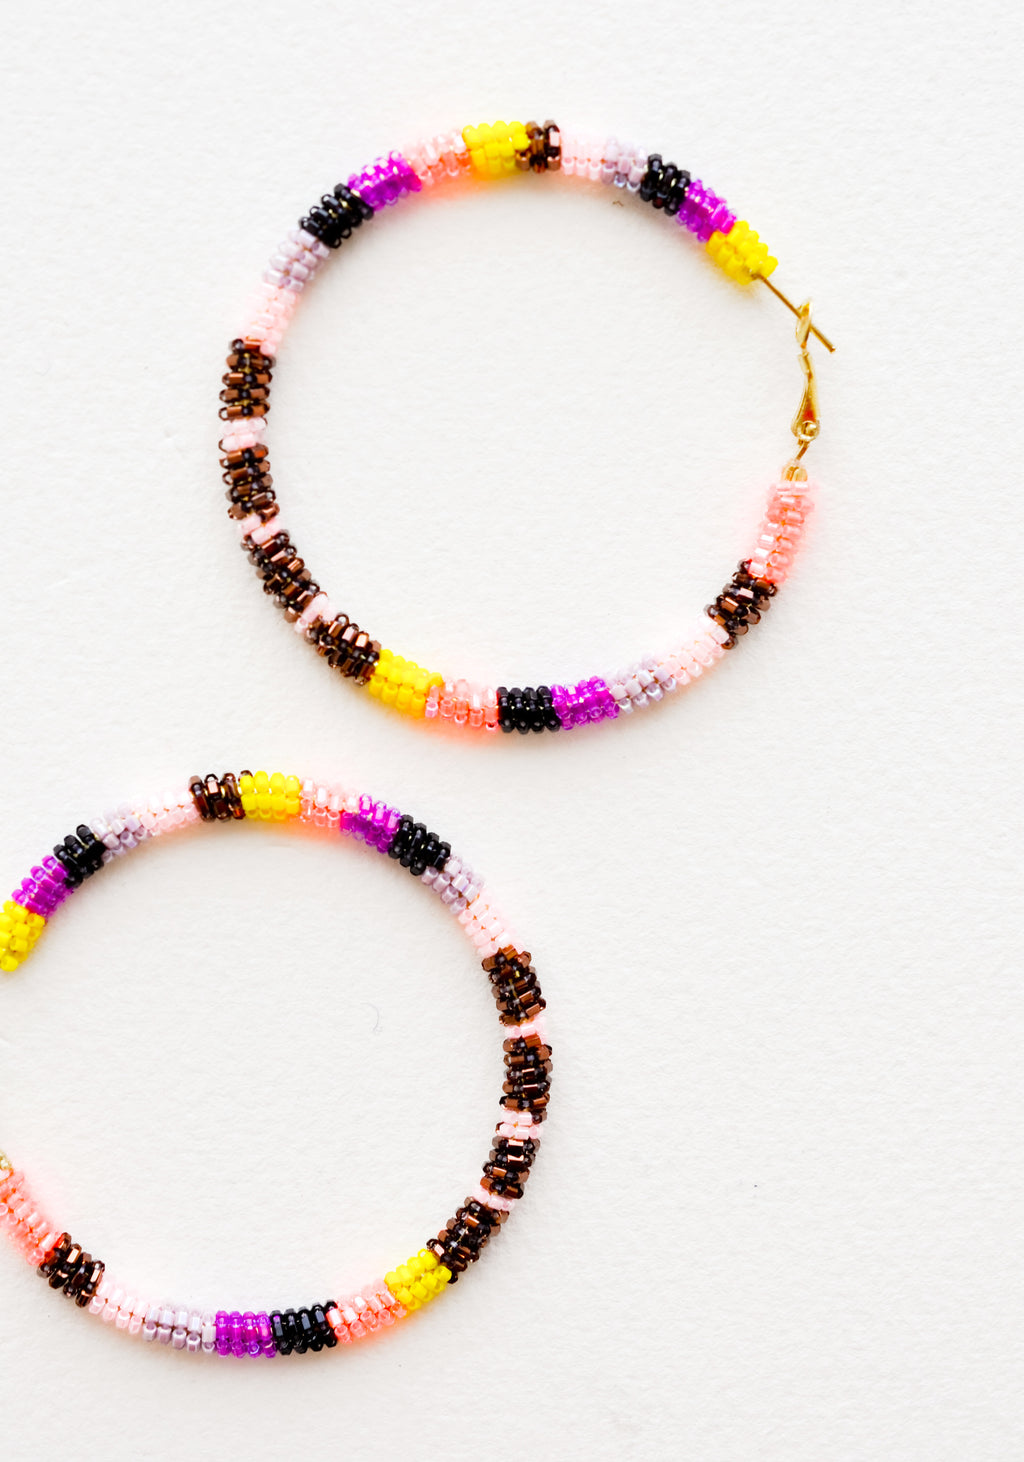 Yellow / Bronze Multi: Hoop earrings with pink, bronze, purple and black glass beads arranged in a circle.